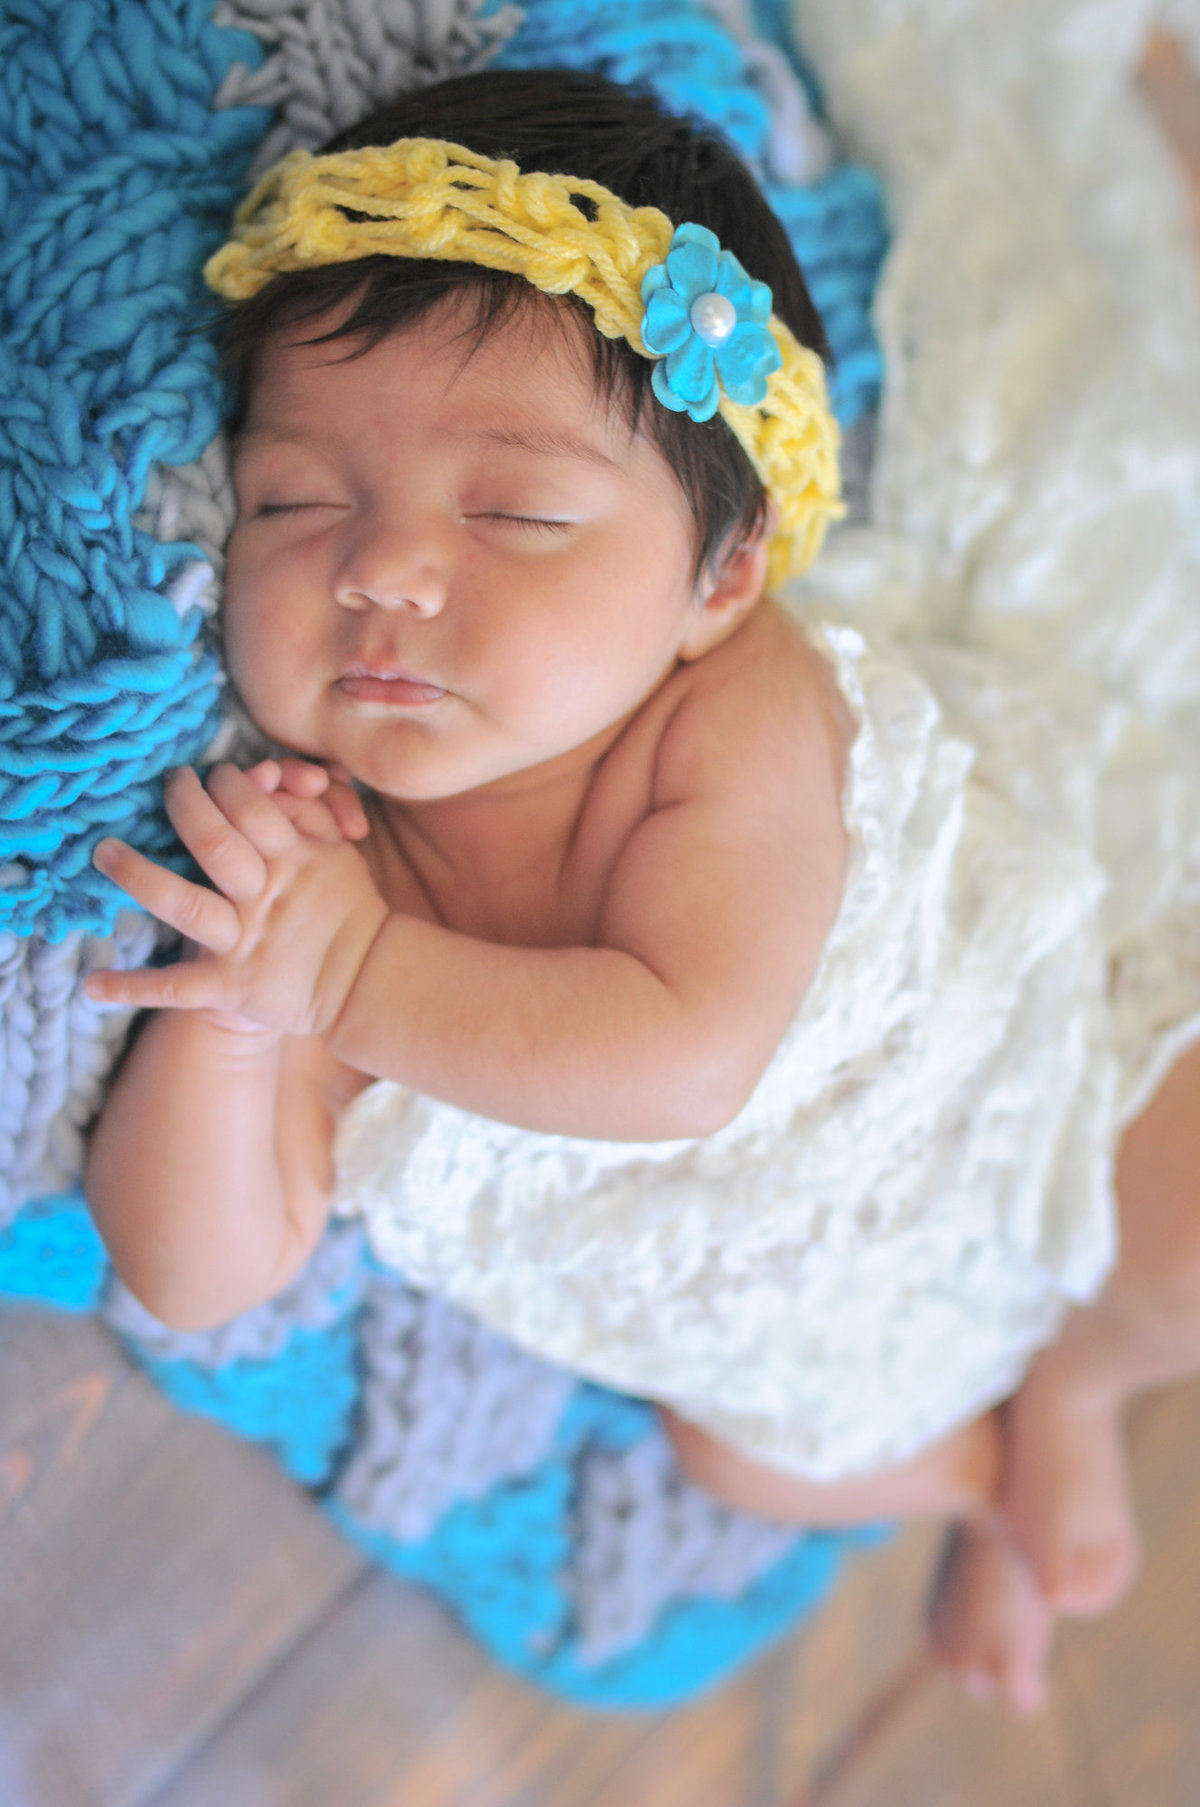 Newborn Baby Photographer in Orange County, California